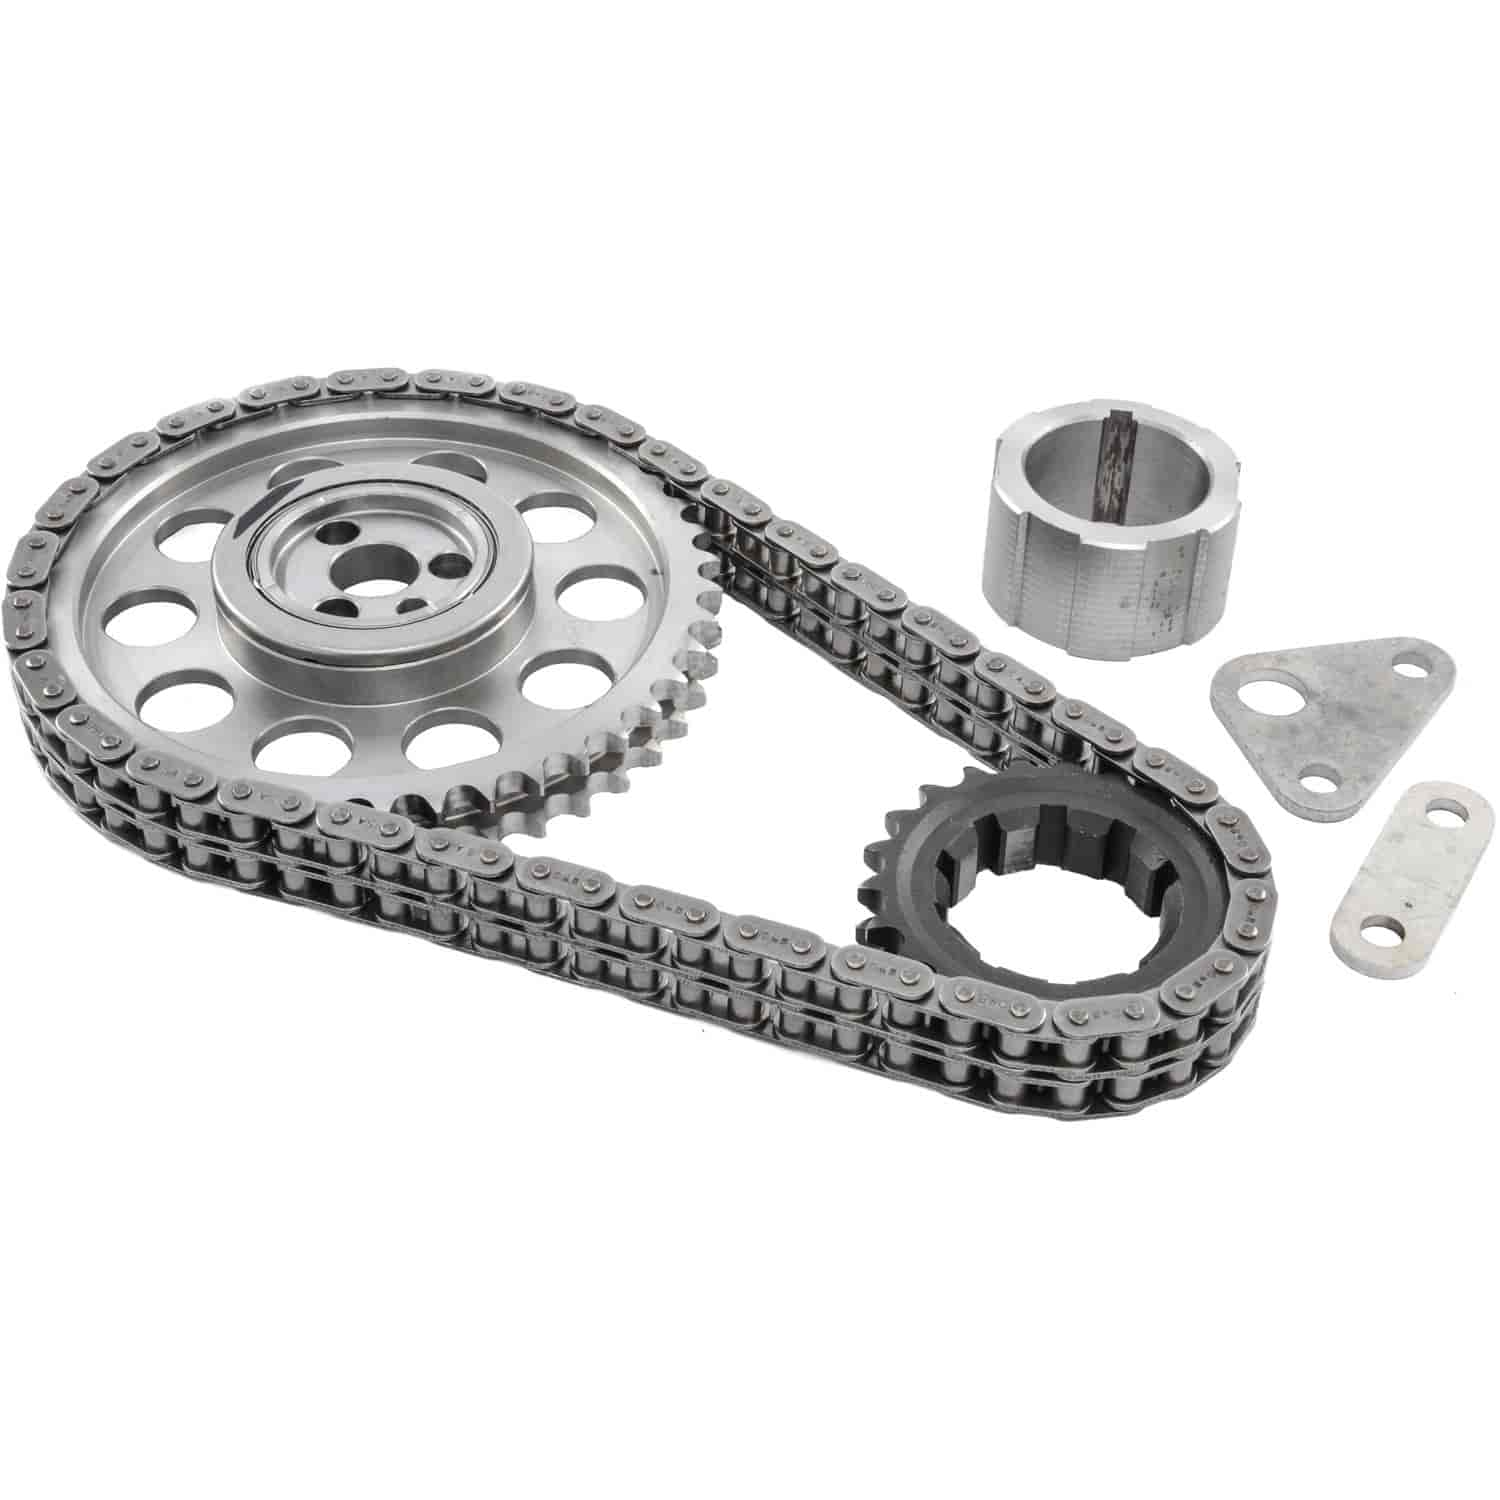 JEGS Performance Products 20400 - JEGS 9-Keyway Double-Roller Billet Timing Chain Sets